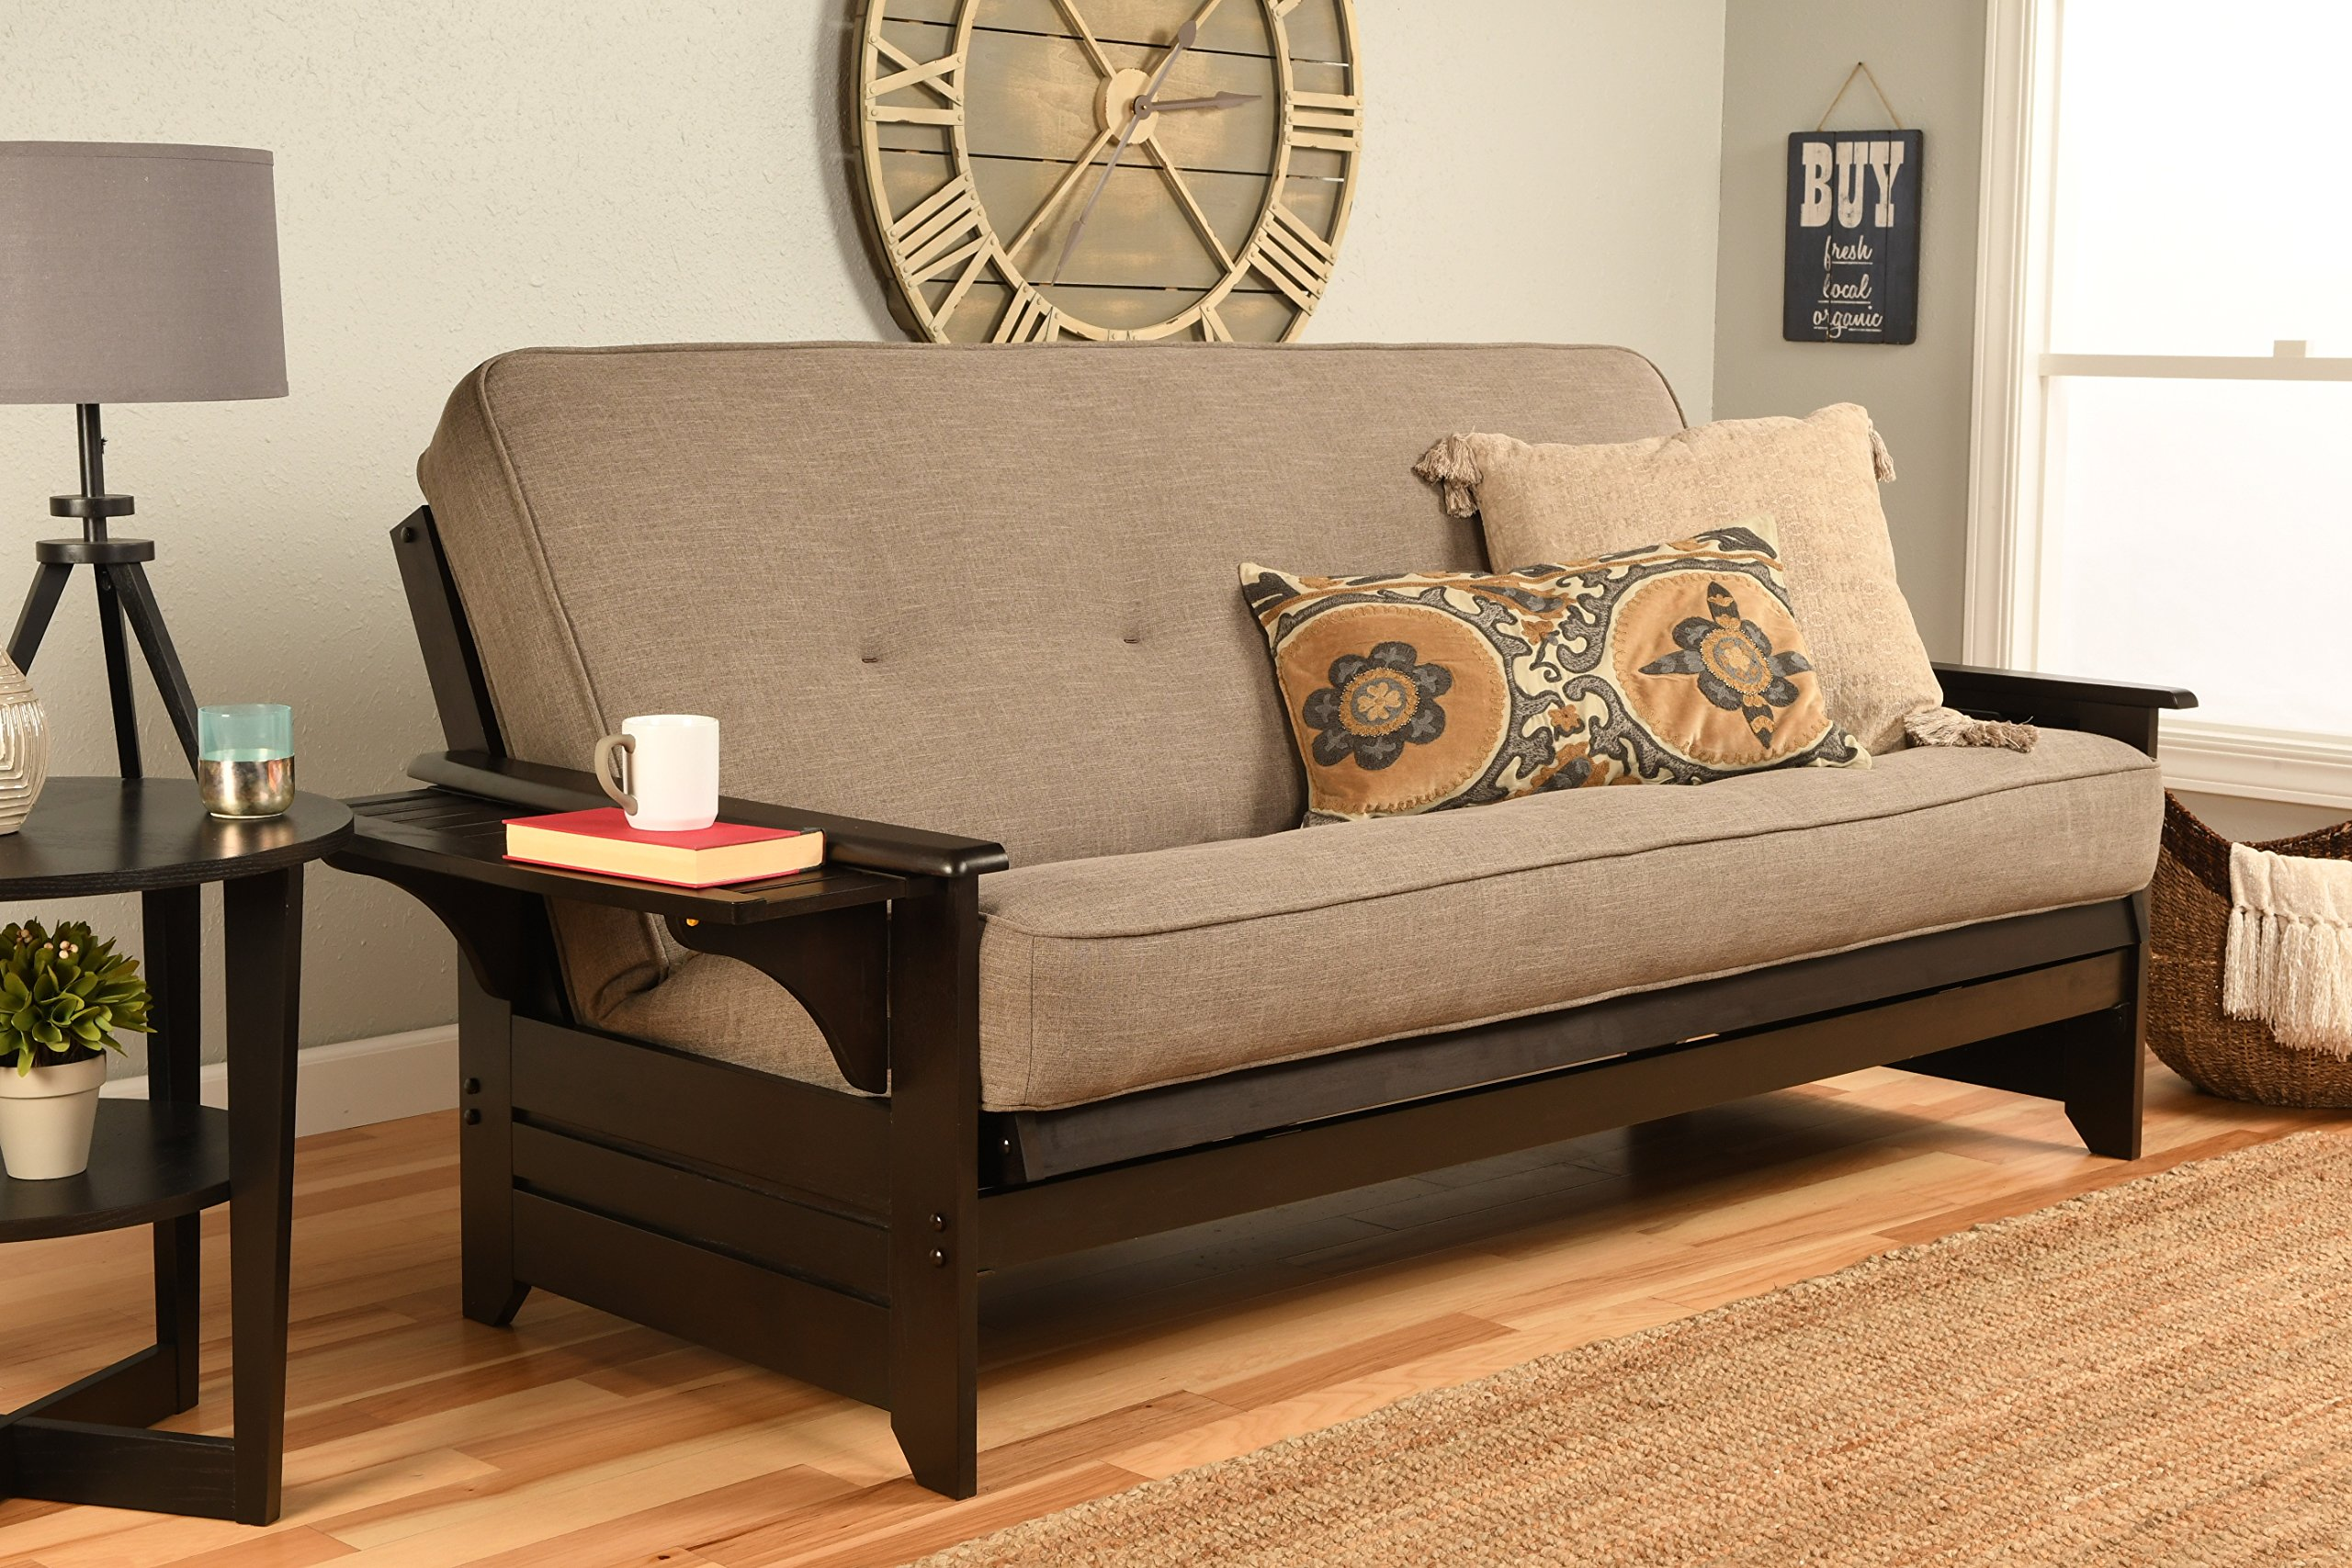 Kodiak Furniture Phoenix Full Size Futon in Espresso Finish, Linen Stone by Kodiak Furniture